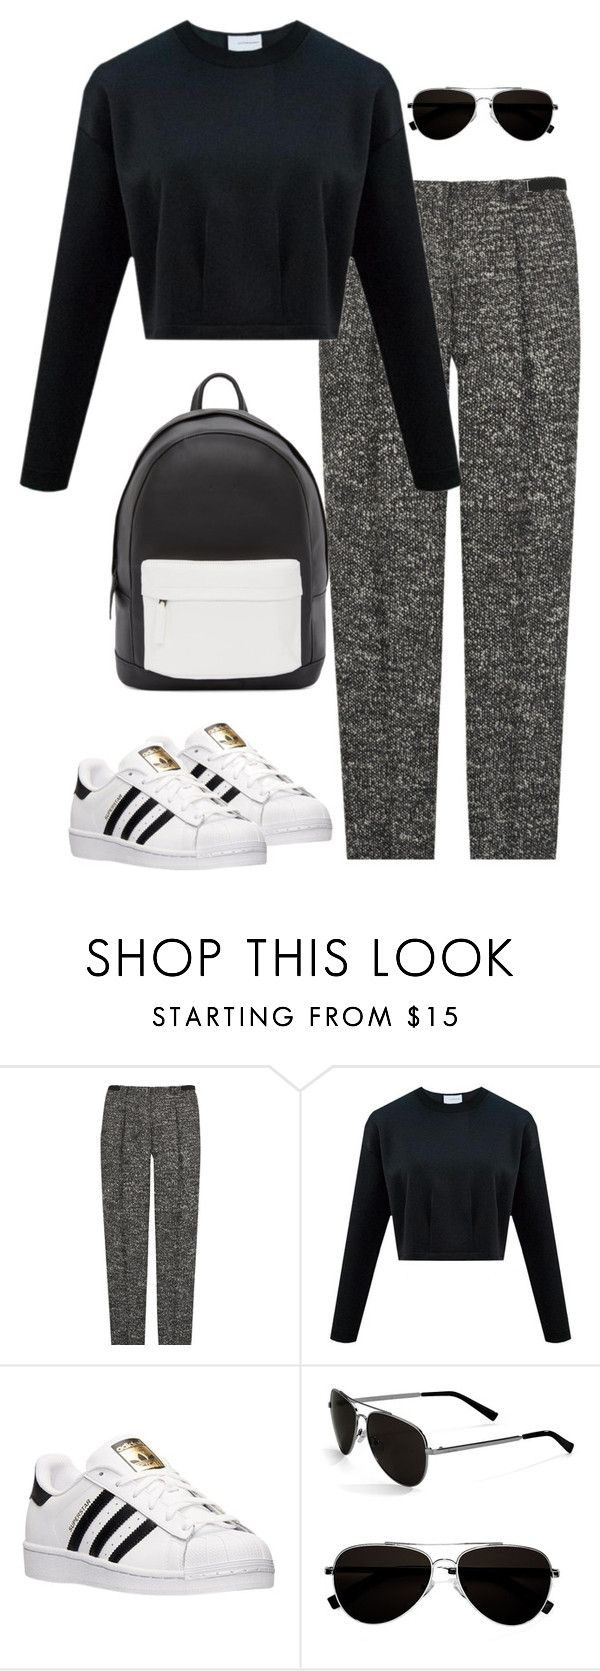 """Untitled #464"" by christyandnef on Polyvore featuring Burberry, adidas, Calvin Klein, PB 0110, women's clothing, women, female, woman, misses and juniors"